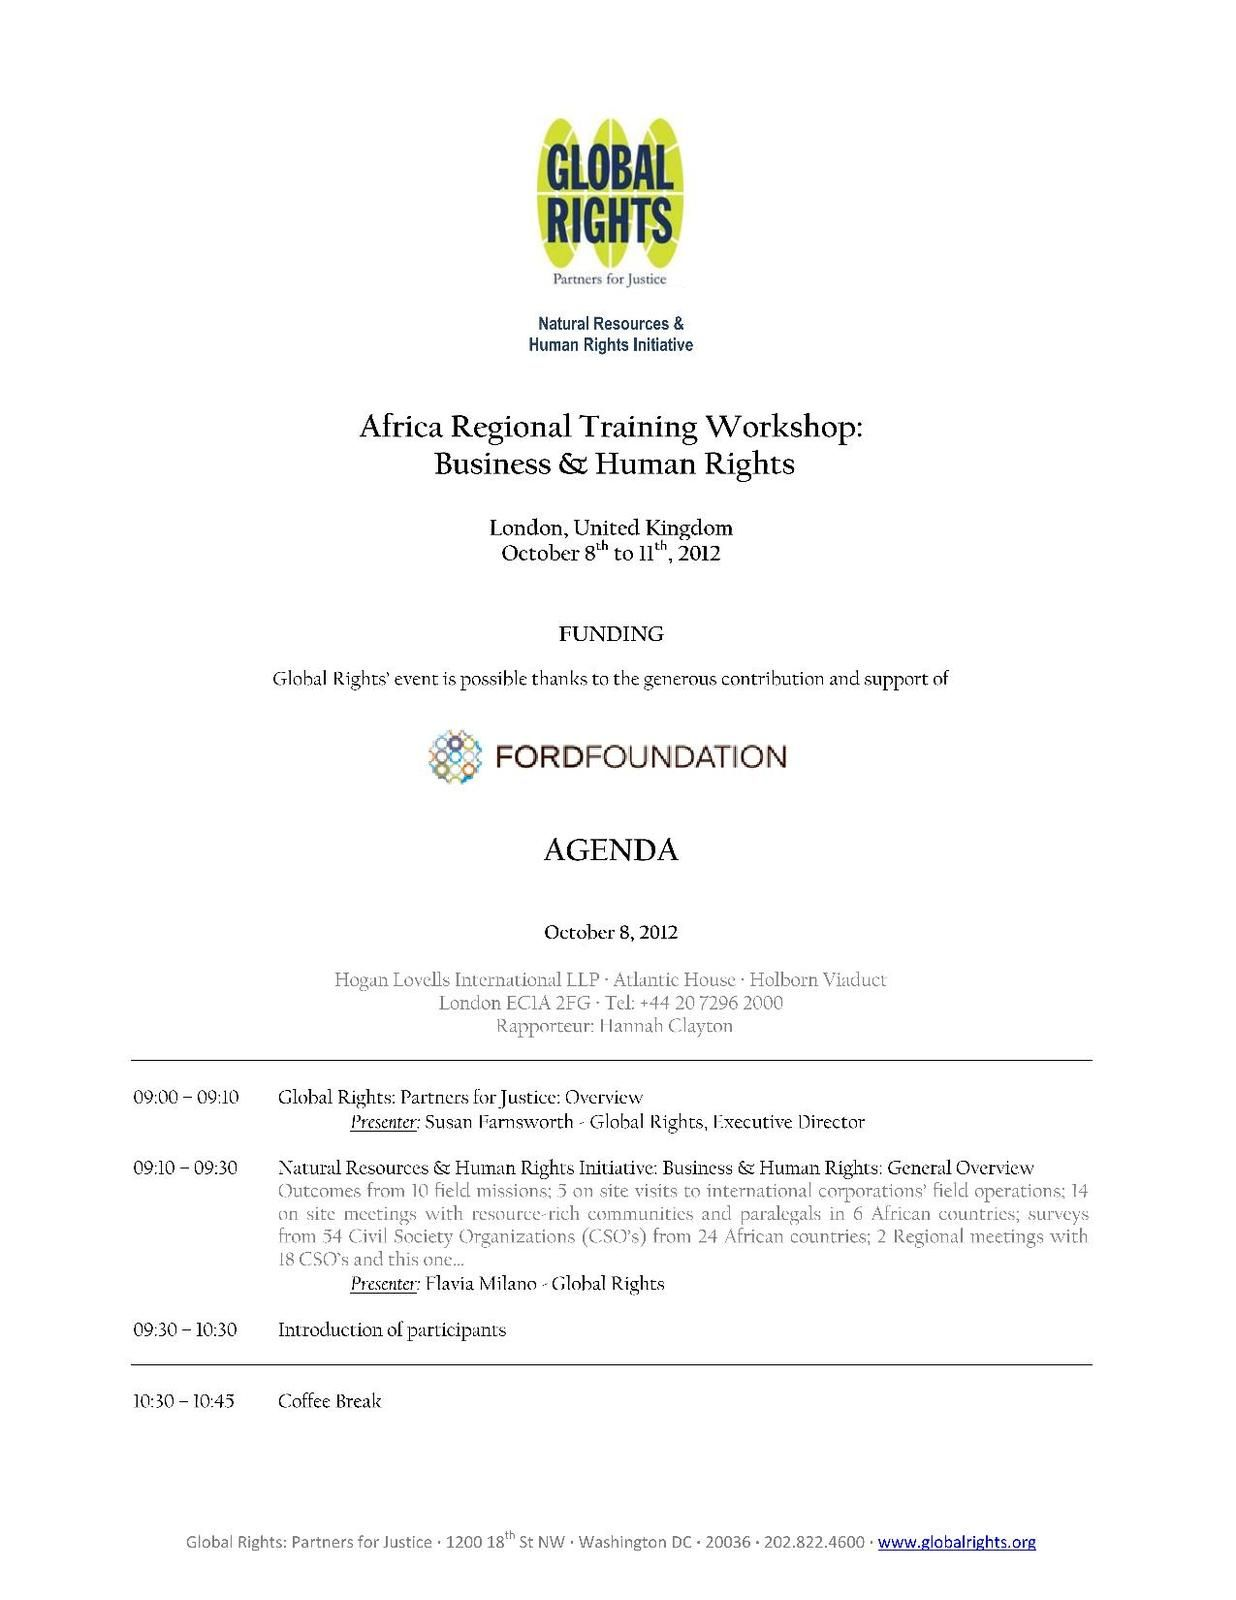 Africa Regional Training workshop on Business and Human rights